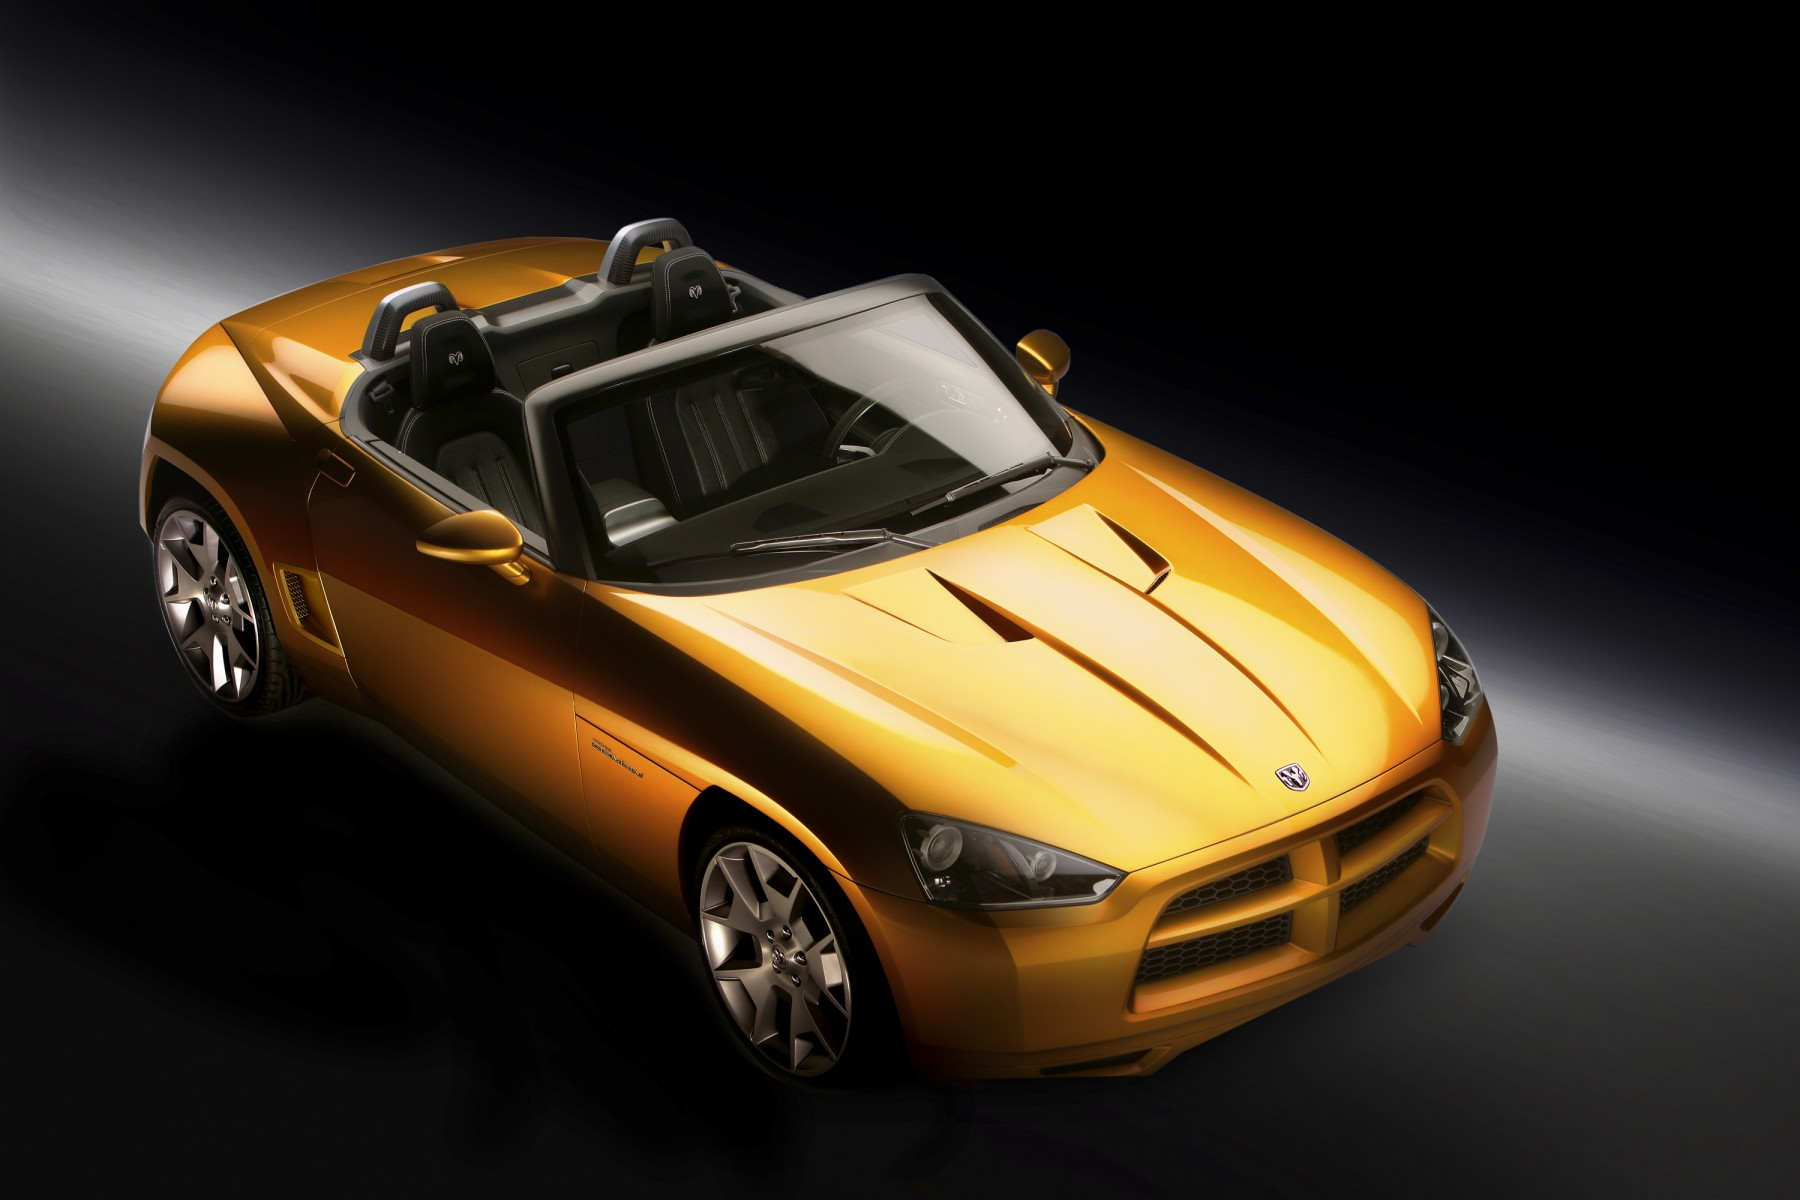 Le concept car Dodge Demon Roadster